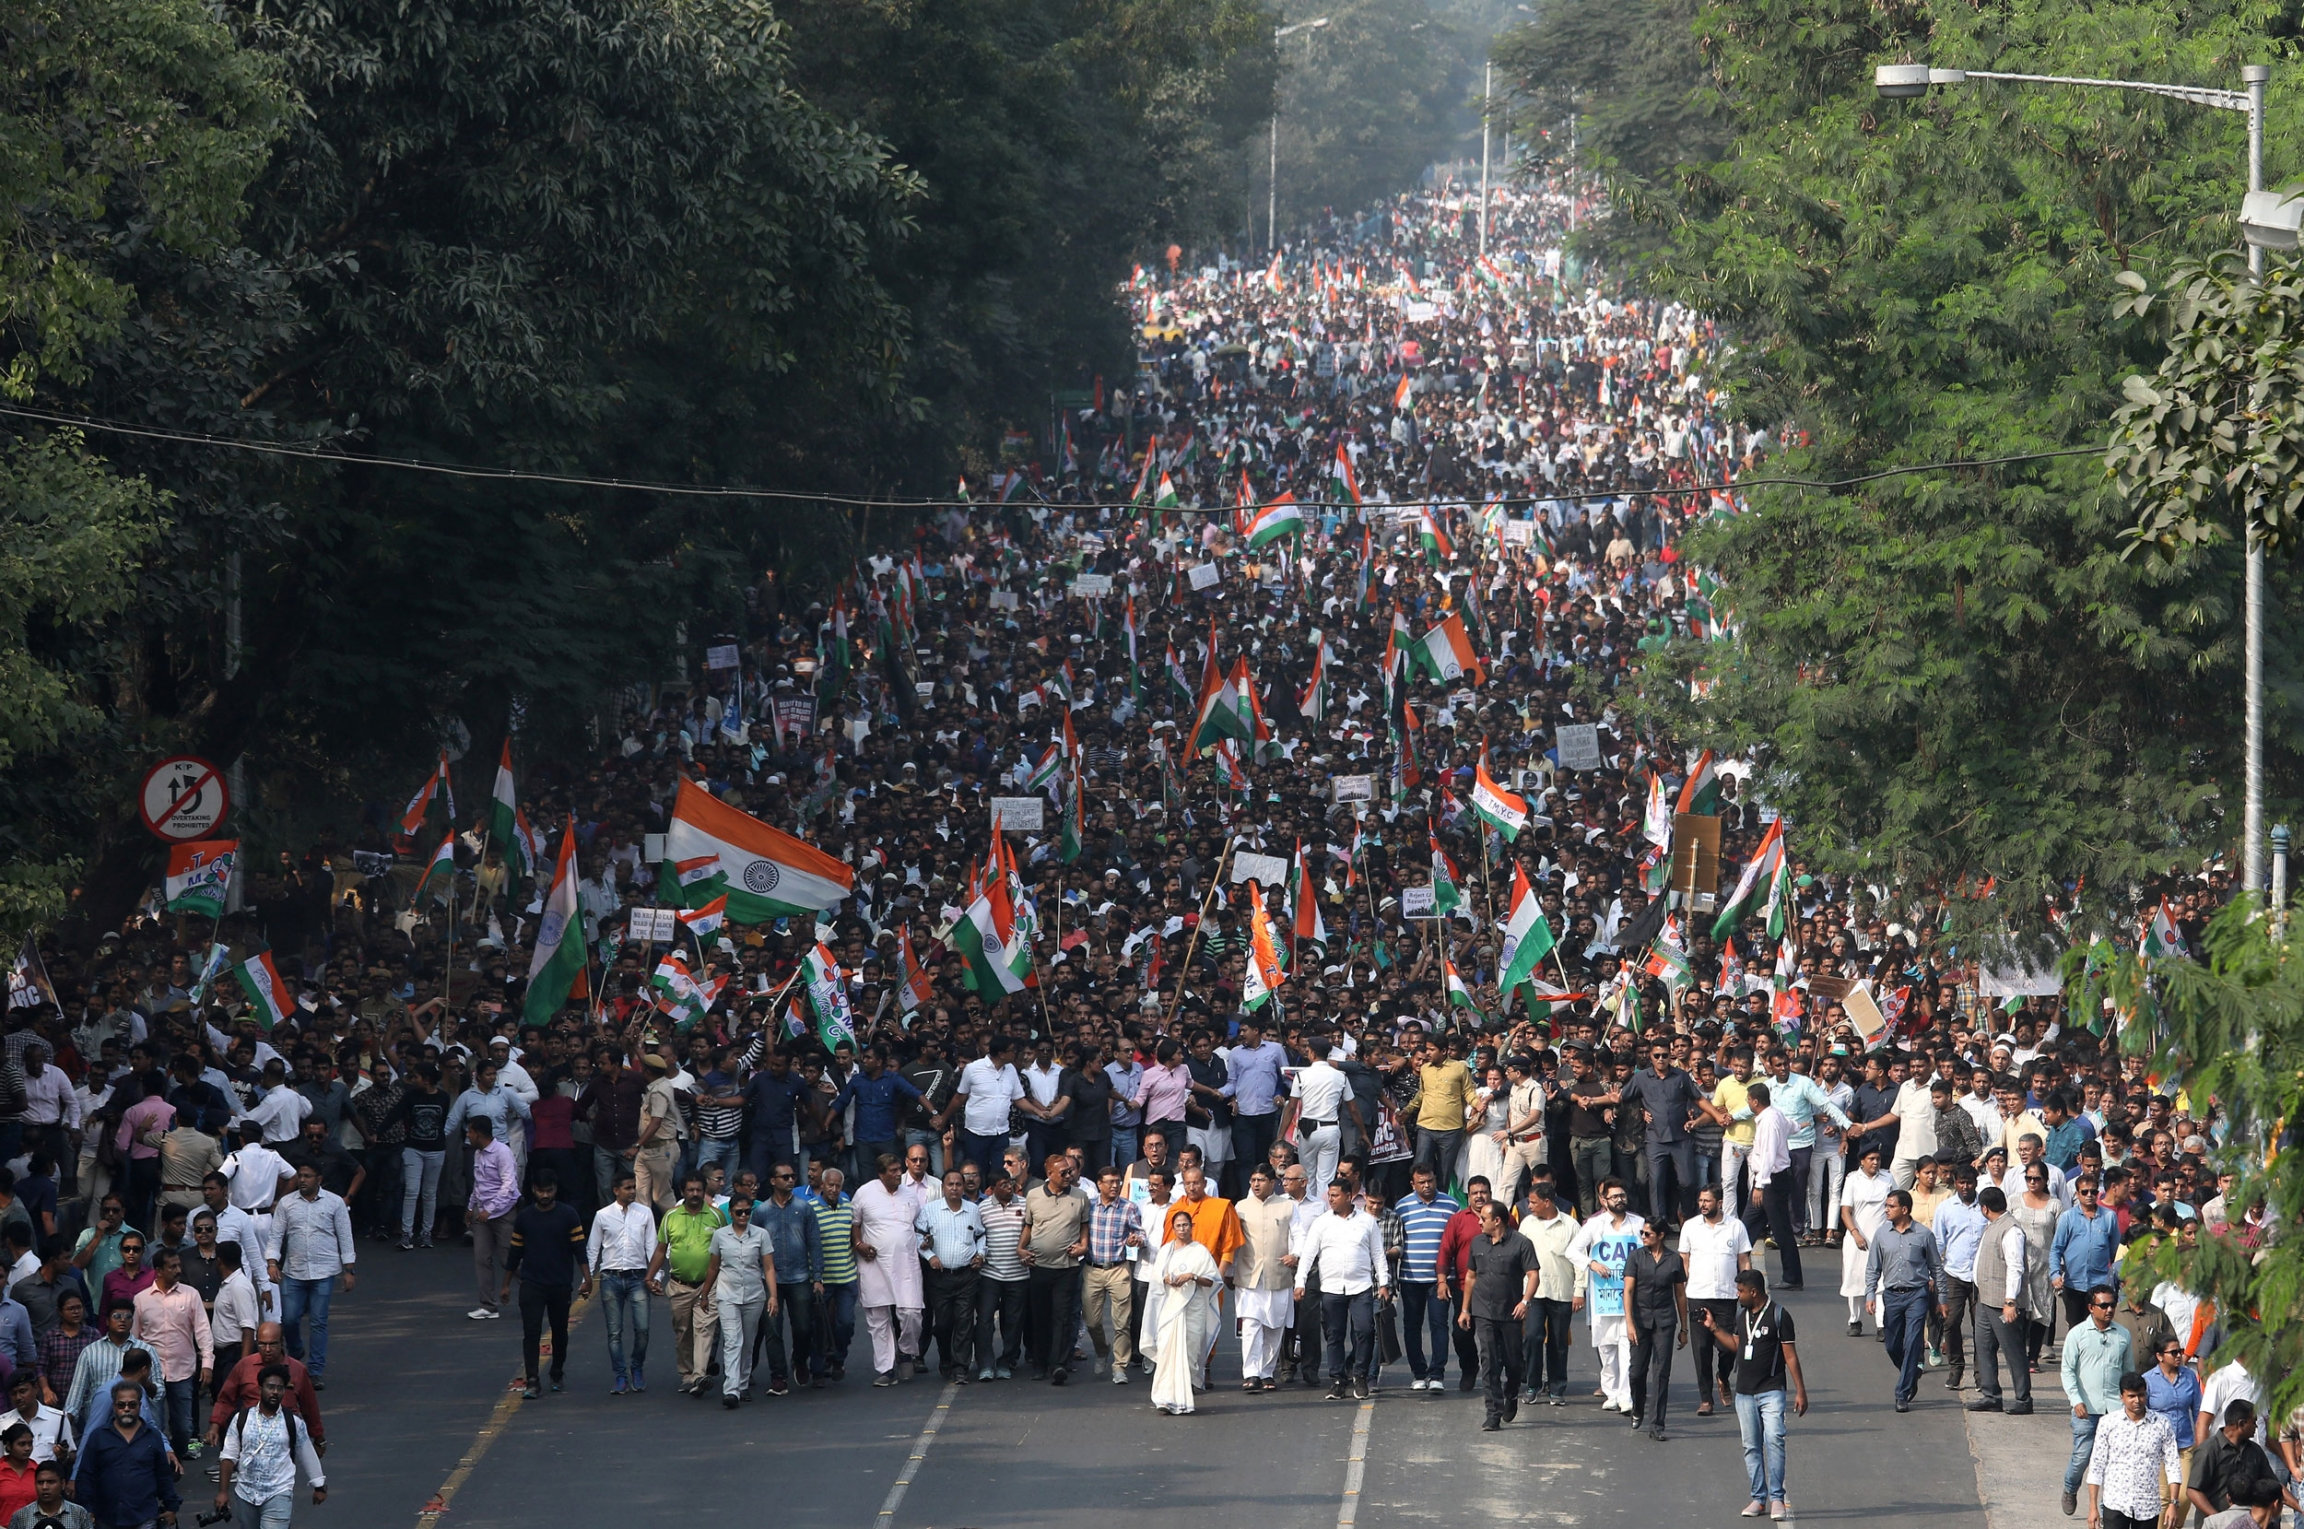 A street is filled with hundreds of protesters, many carrying India's national flag.